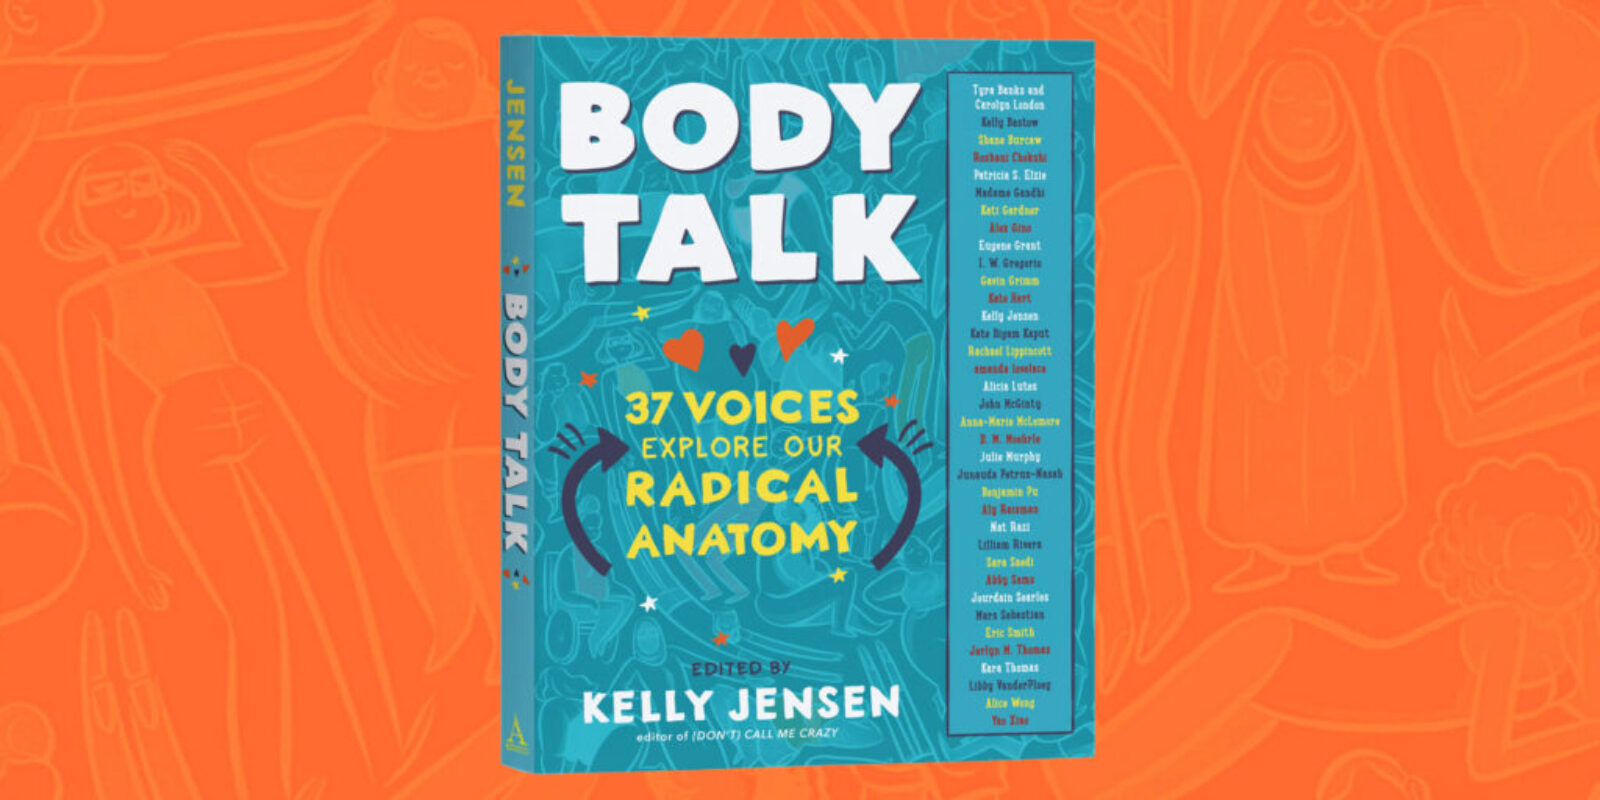 Body-Talk-37-Voices-Explore-Our-Radical-Anatomy-edited-by-Kelly-Jensen-Header